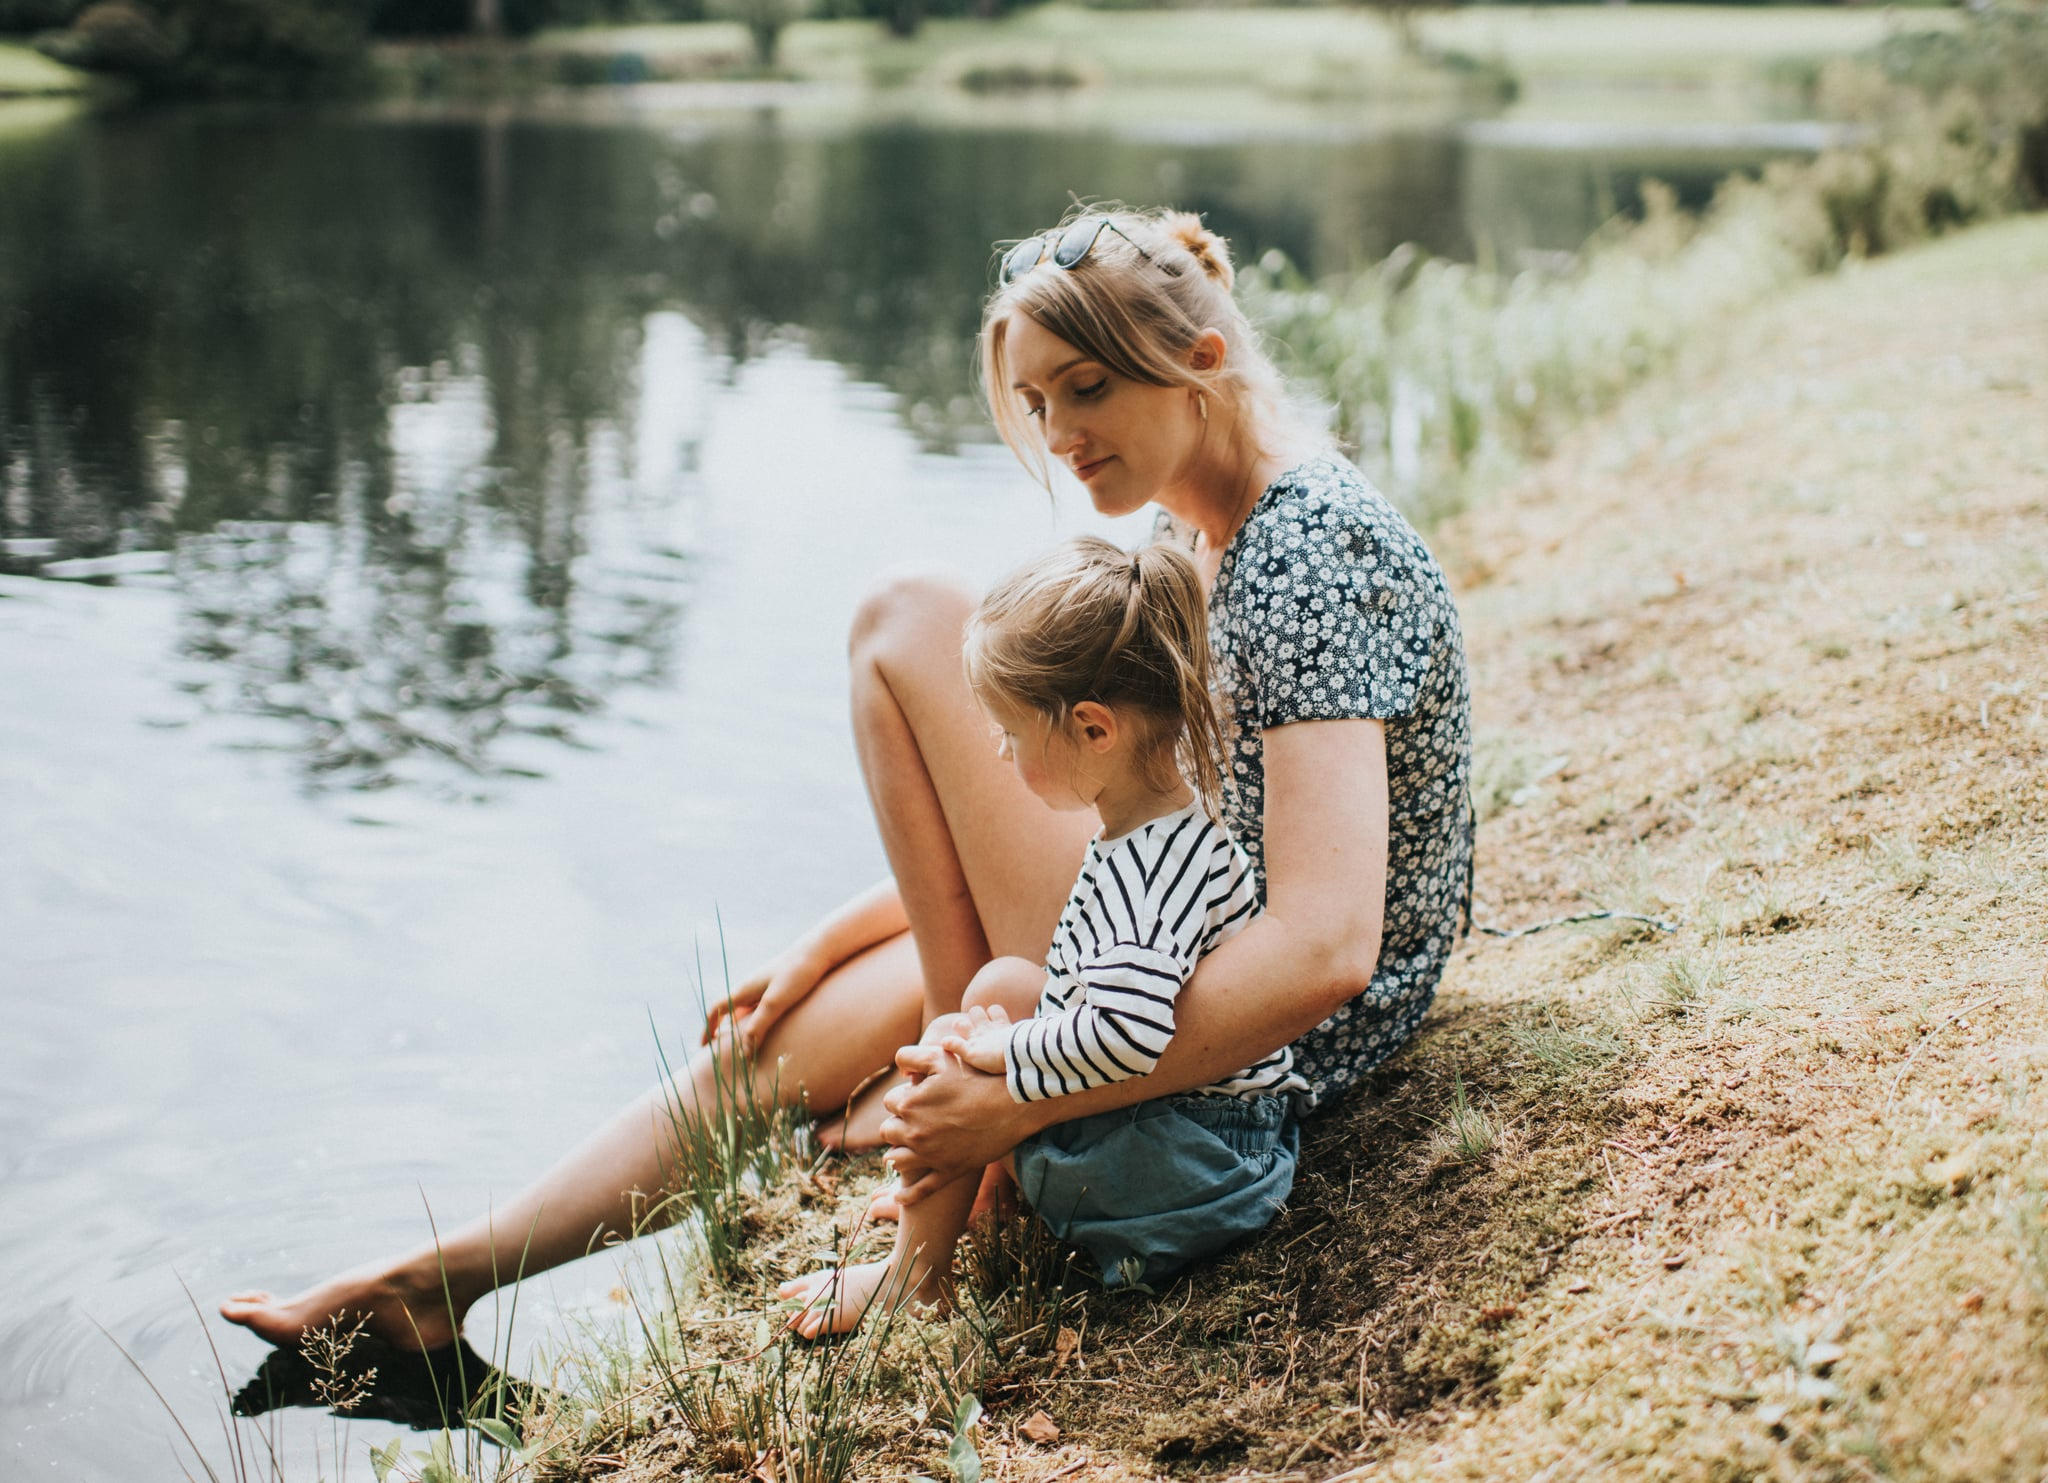 Adult and child together at the edge of a lake.